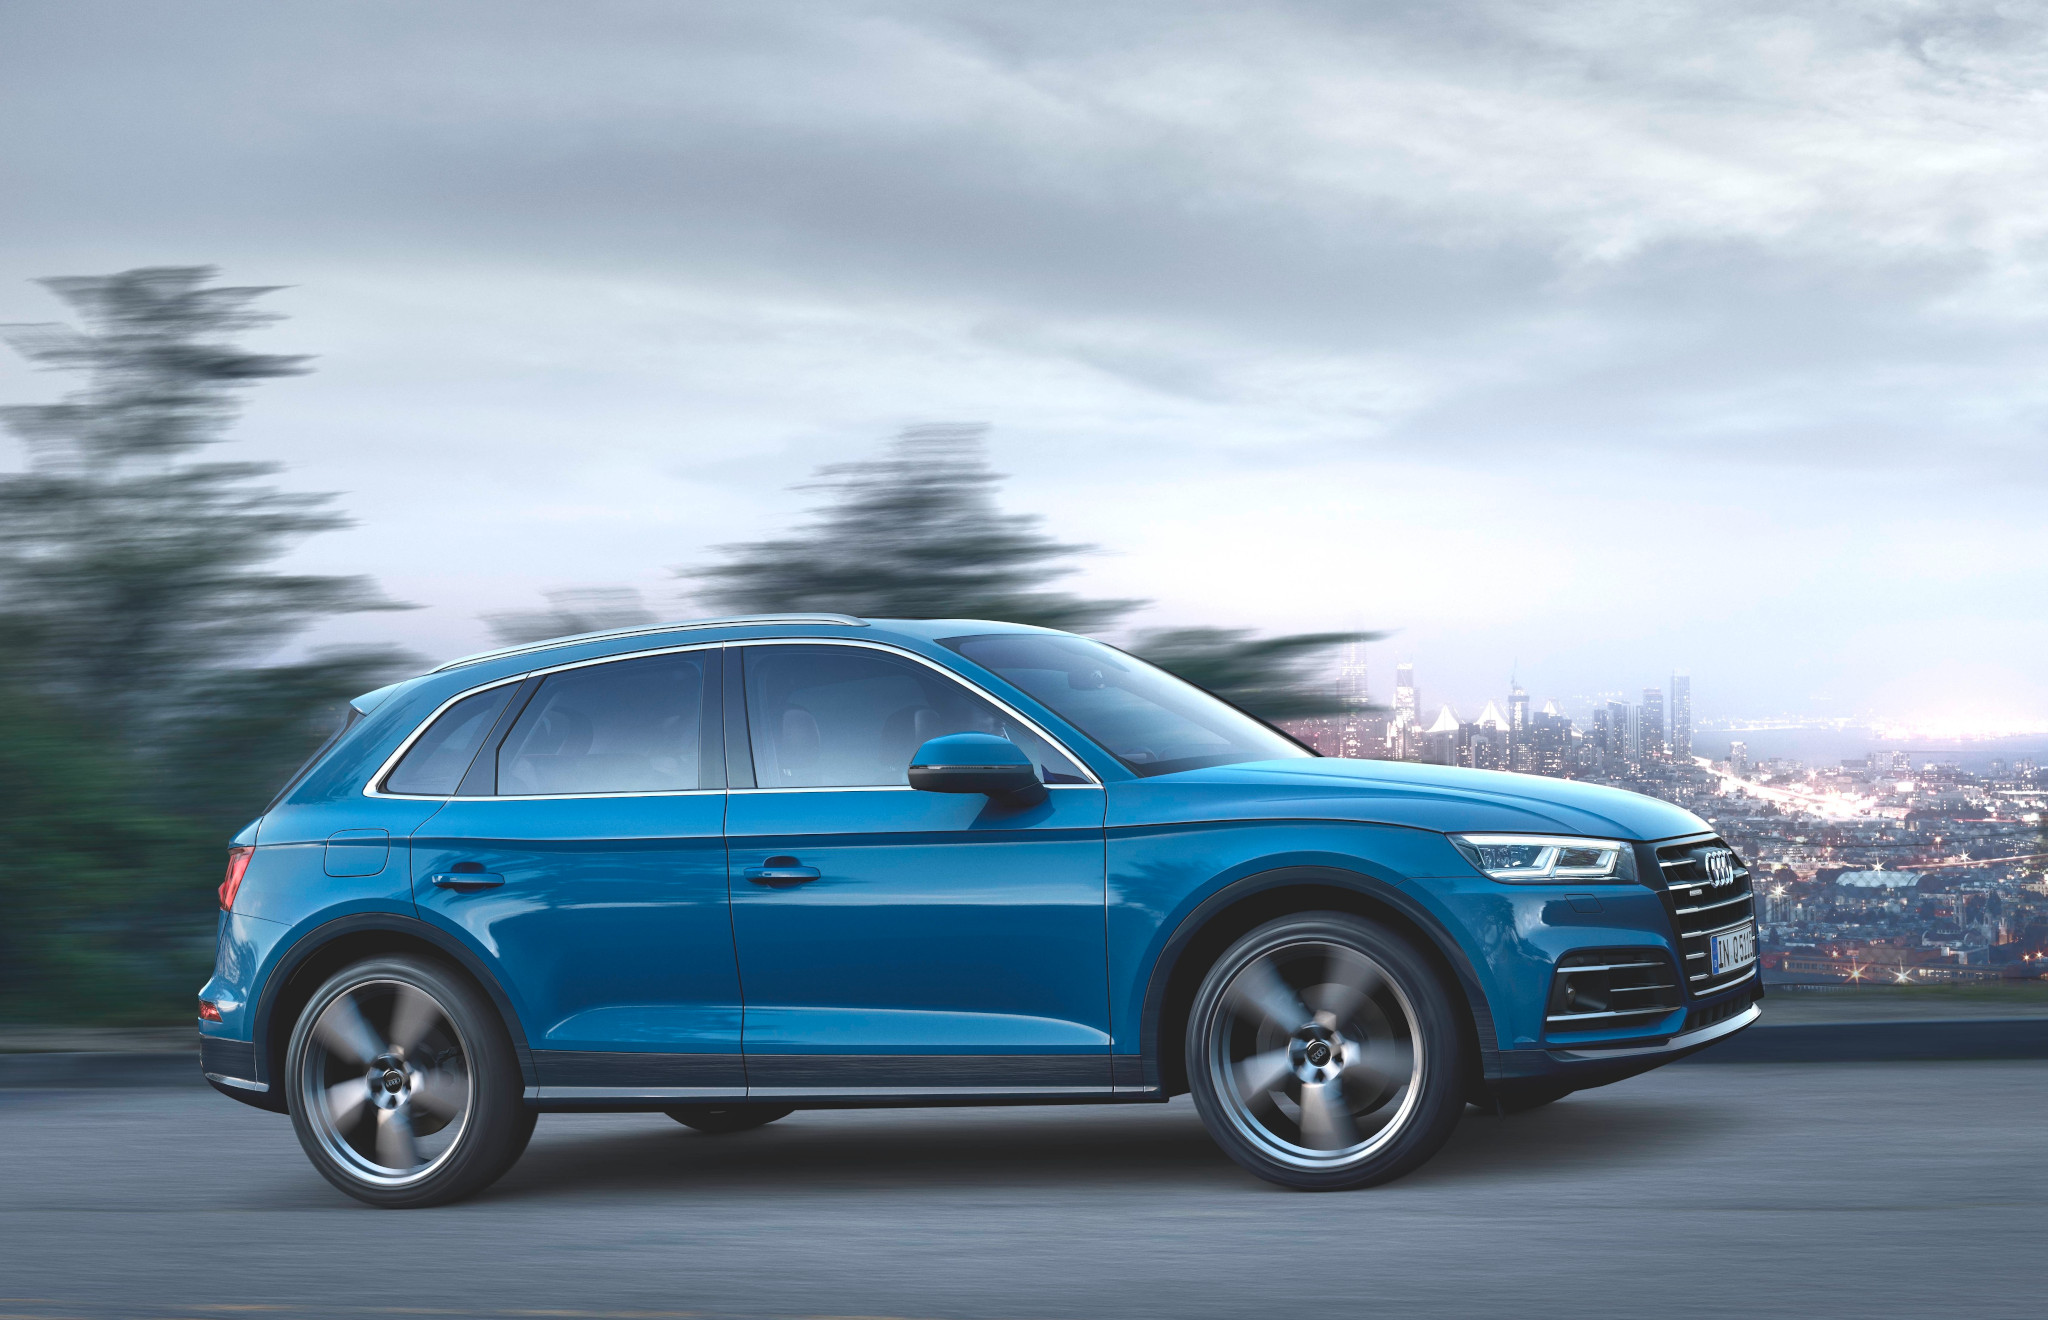 Audi Prices 2020 Q5 SUV and A8 Sedan Plug-In Hybrids